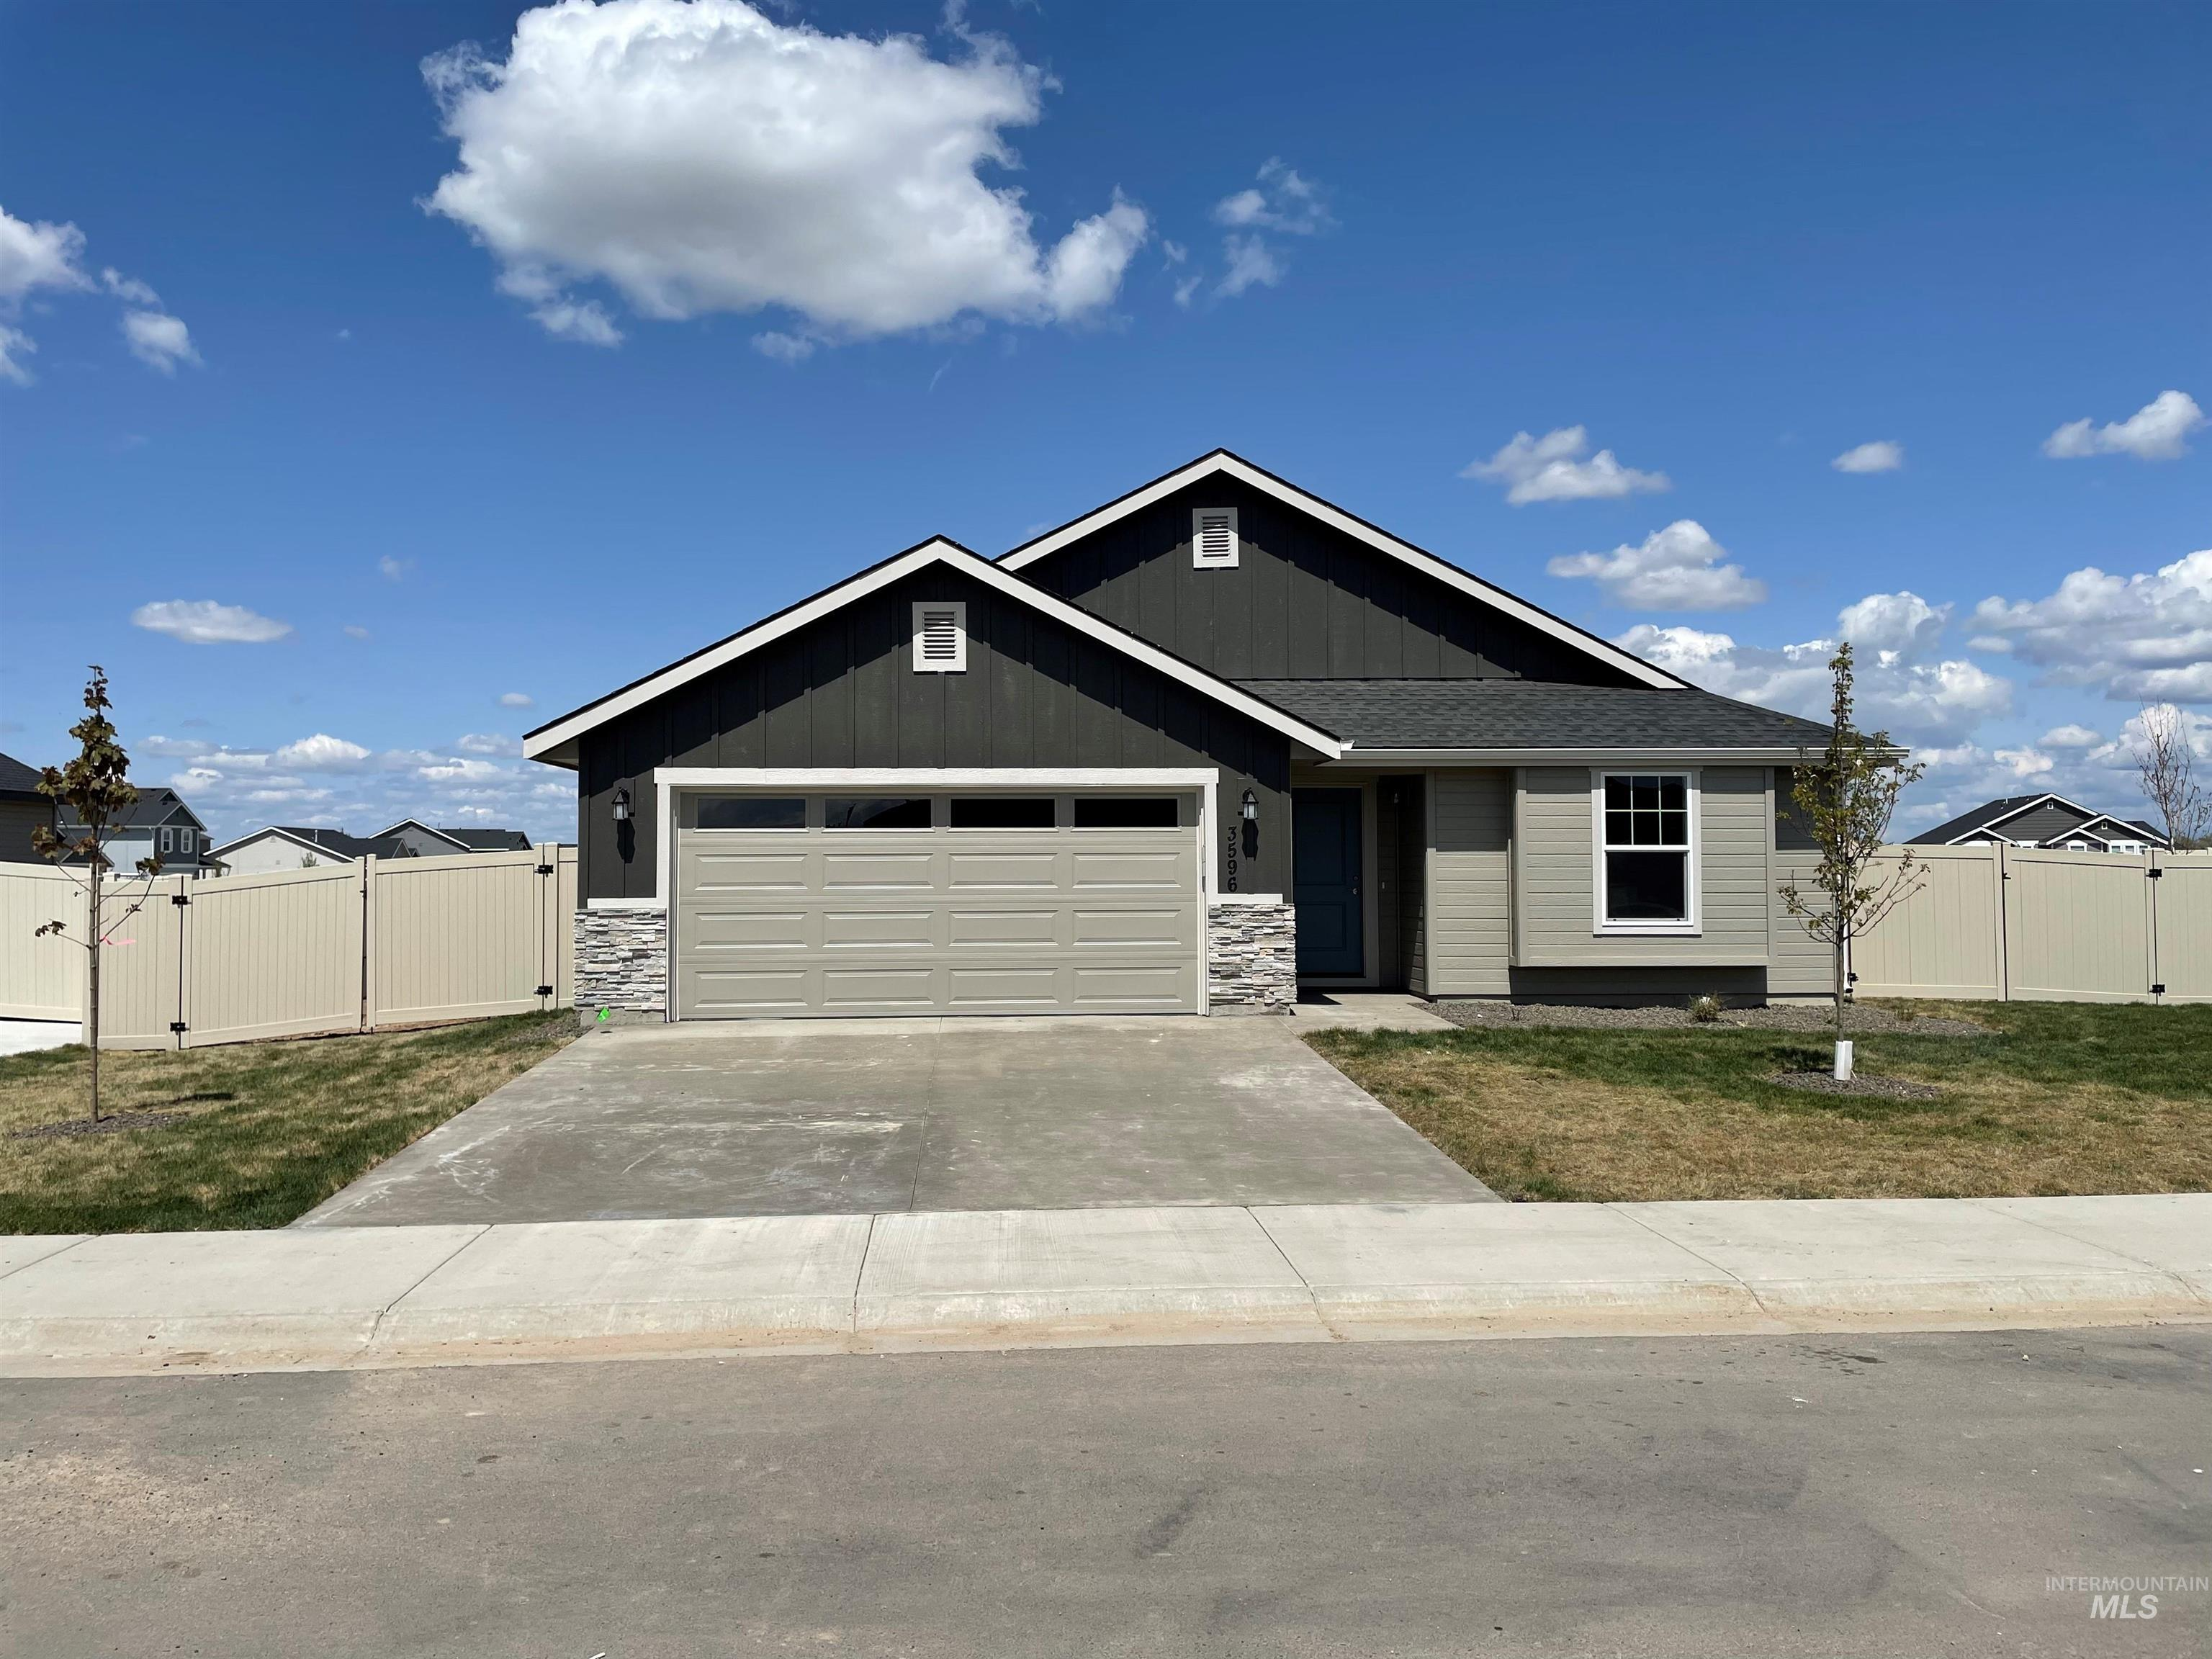 Pre-Sold Birch with County Elevation. This home features granite countertops  in kitchen and bathrooms, upgraded cabinets, vaulted ceilings, dual vanities, separate soaker tub and shower covered patio, and Much More. Photo Similar - Jenny LeBlanc, Main: 208-724-4920, Hubble Homes, LLC, Main: 208-433-8800,